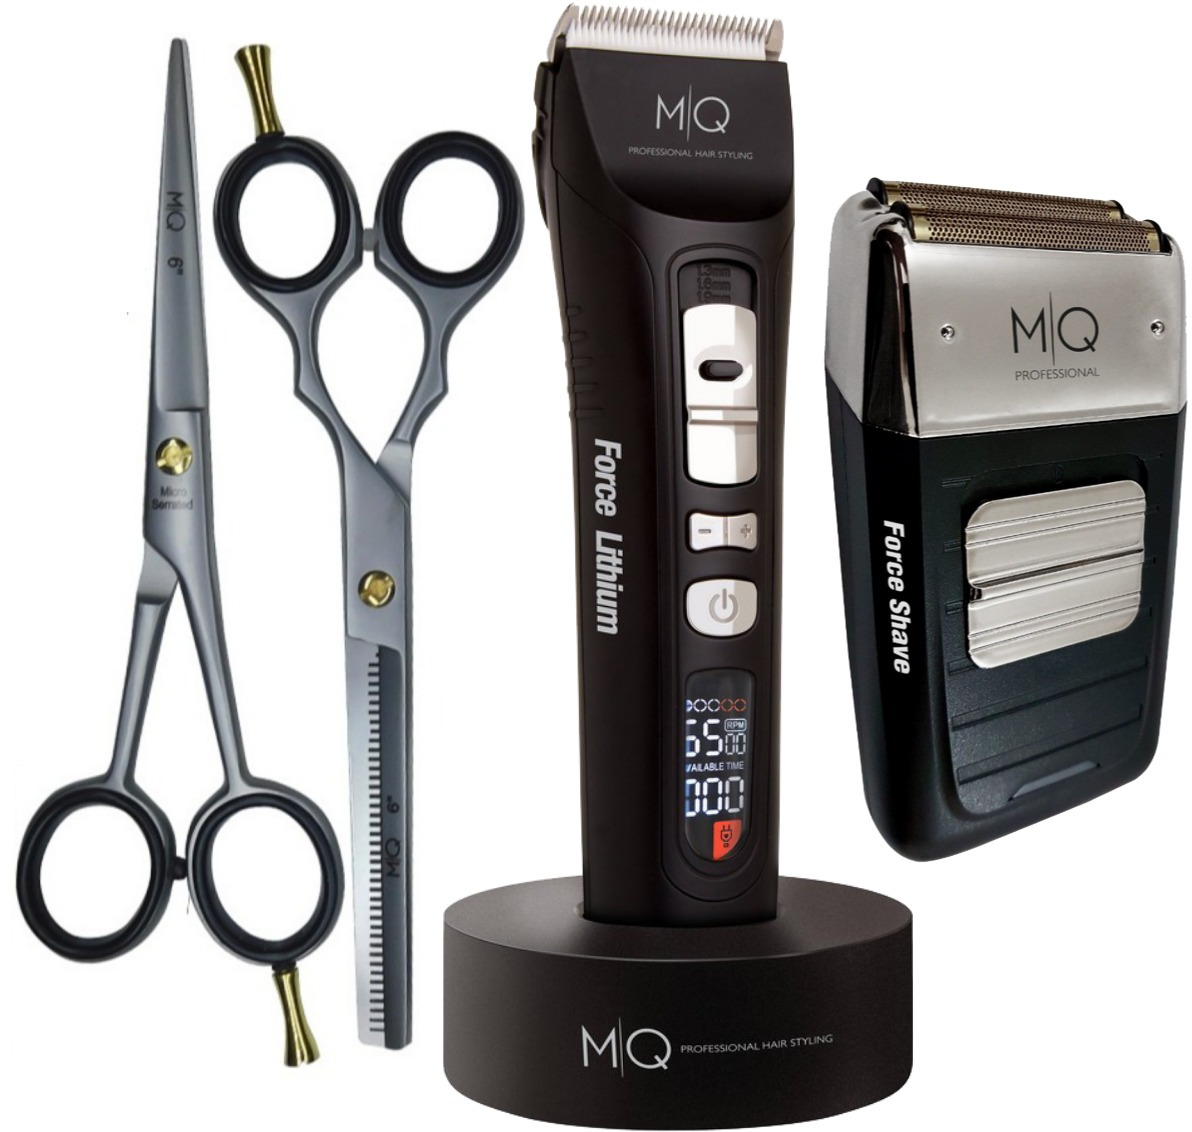 7011a64b4 Máquina De Corte Force Lithium + Shave Mq + Kit De Tesouras - R$ 699 ...